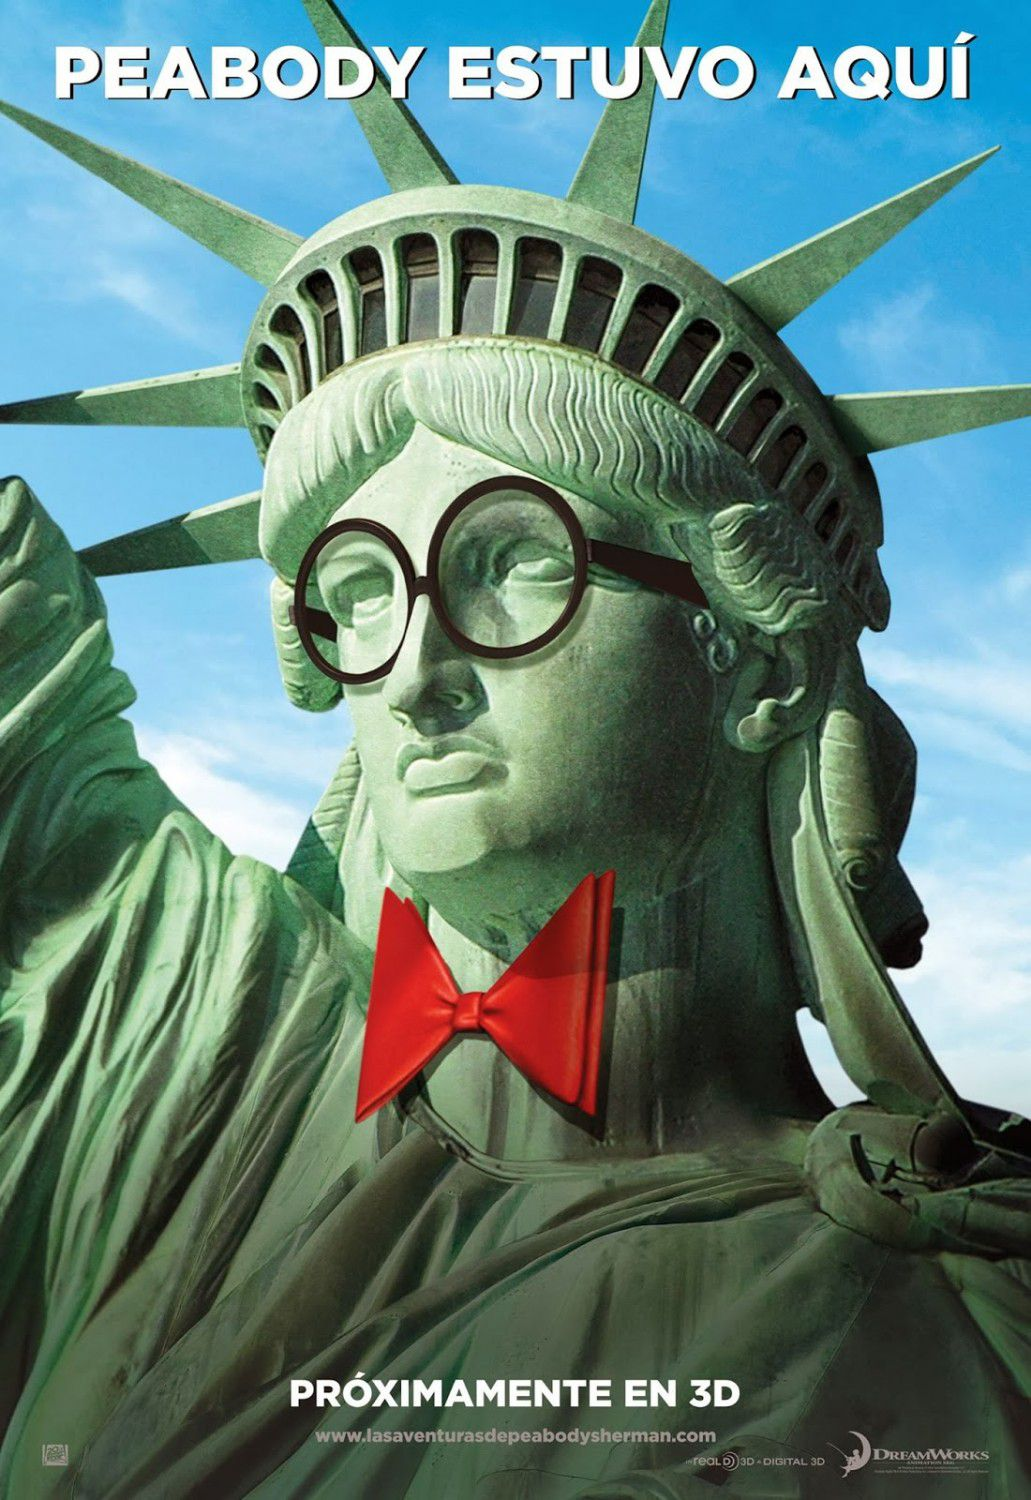 Mr Peabody and Sherman - animate film poster - New York - Statue of Liberty - Statua della Libertà